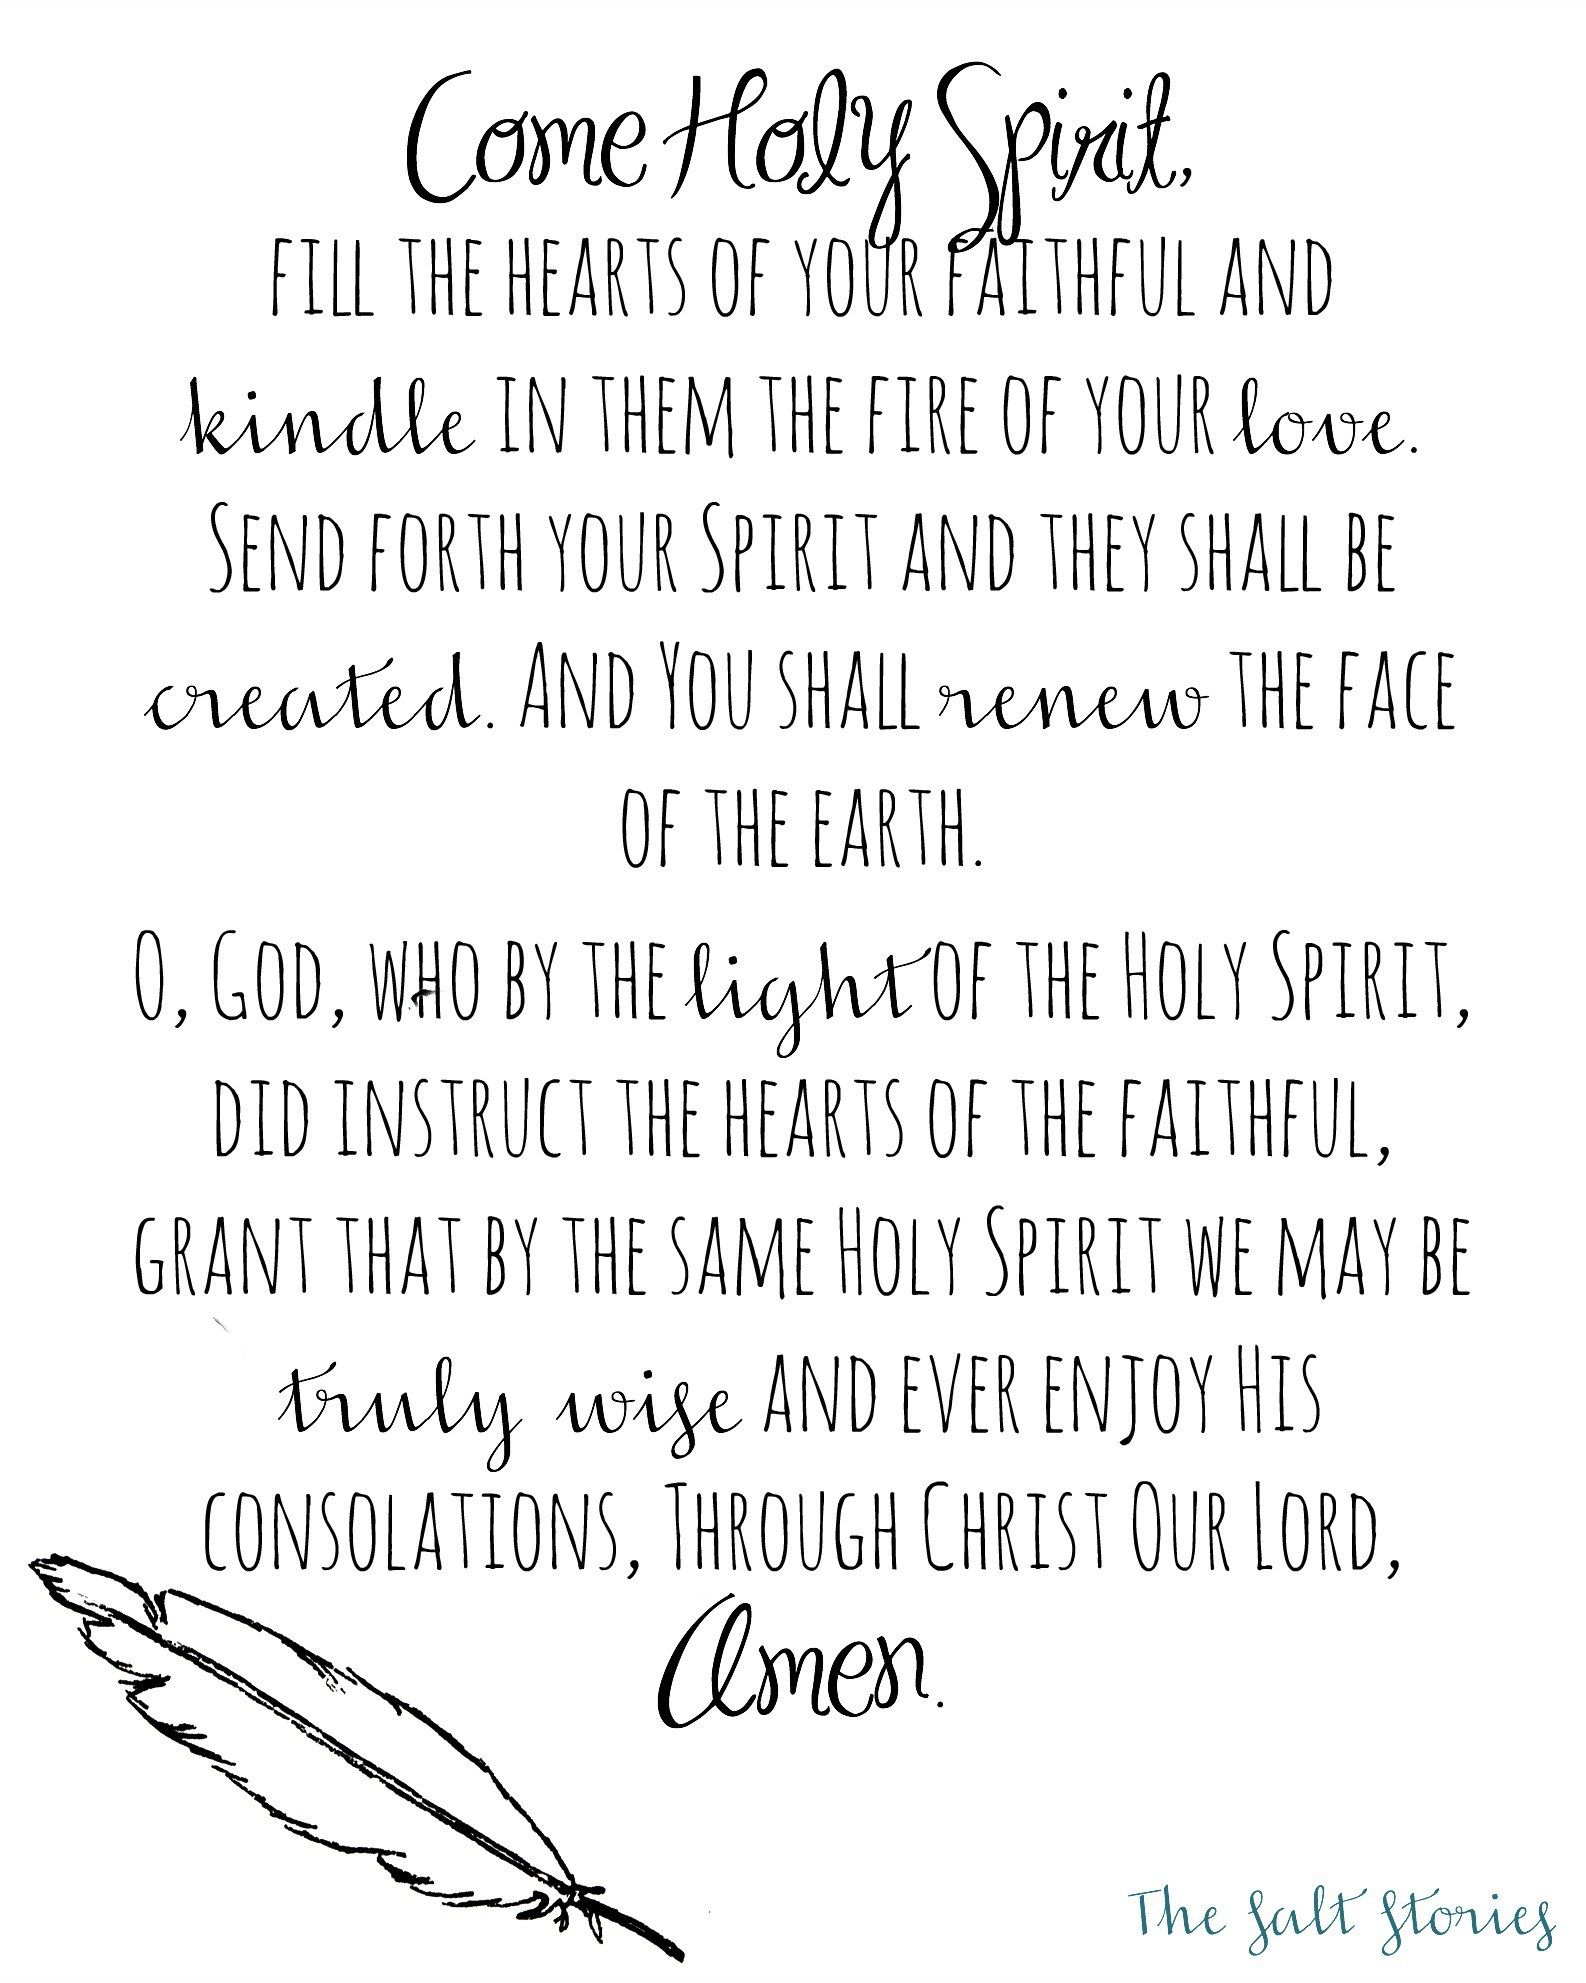 photo relating to Come Holy Spirit Prayer Printable called Occur Holy Spirit.. Inside Remembrance @The Salt Reports